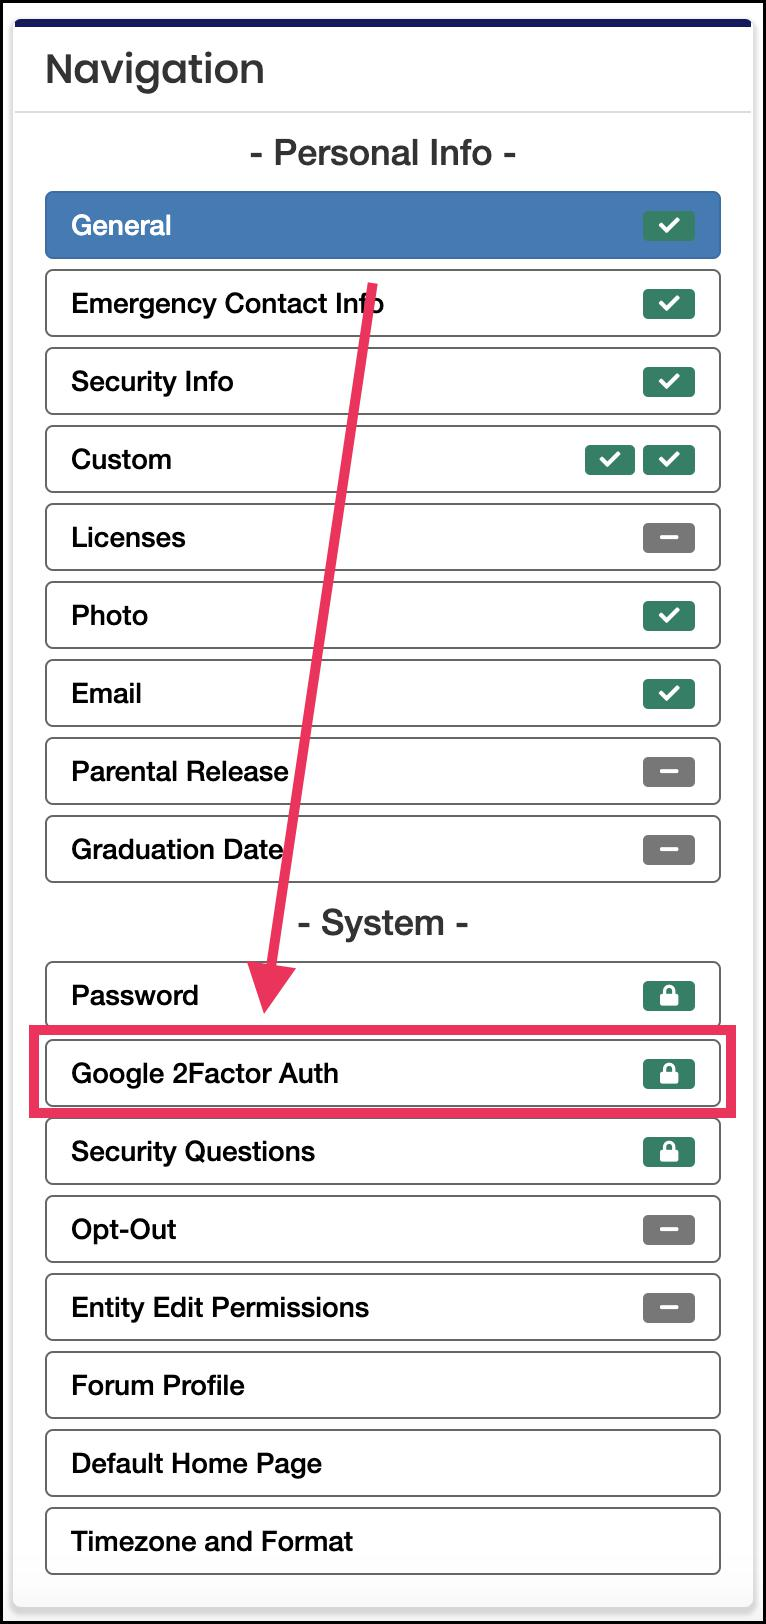 navigation panel pointing to Google 2Factor Auth button